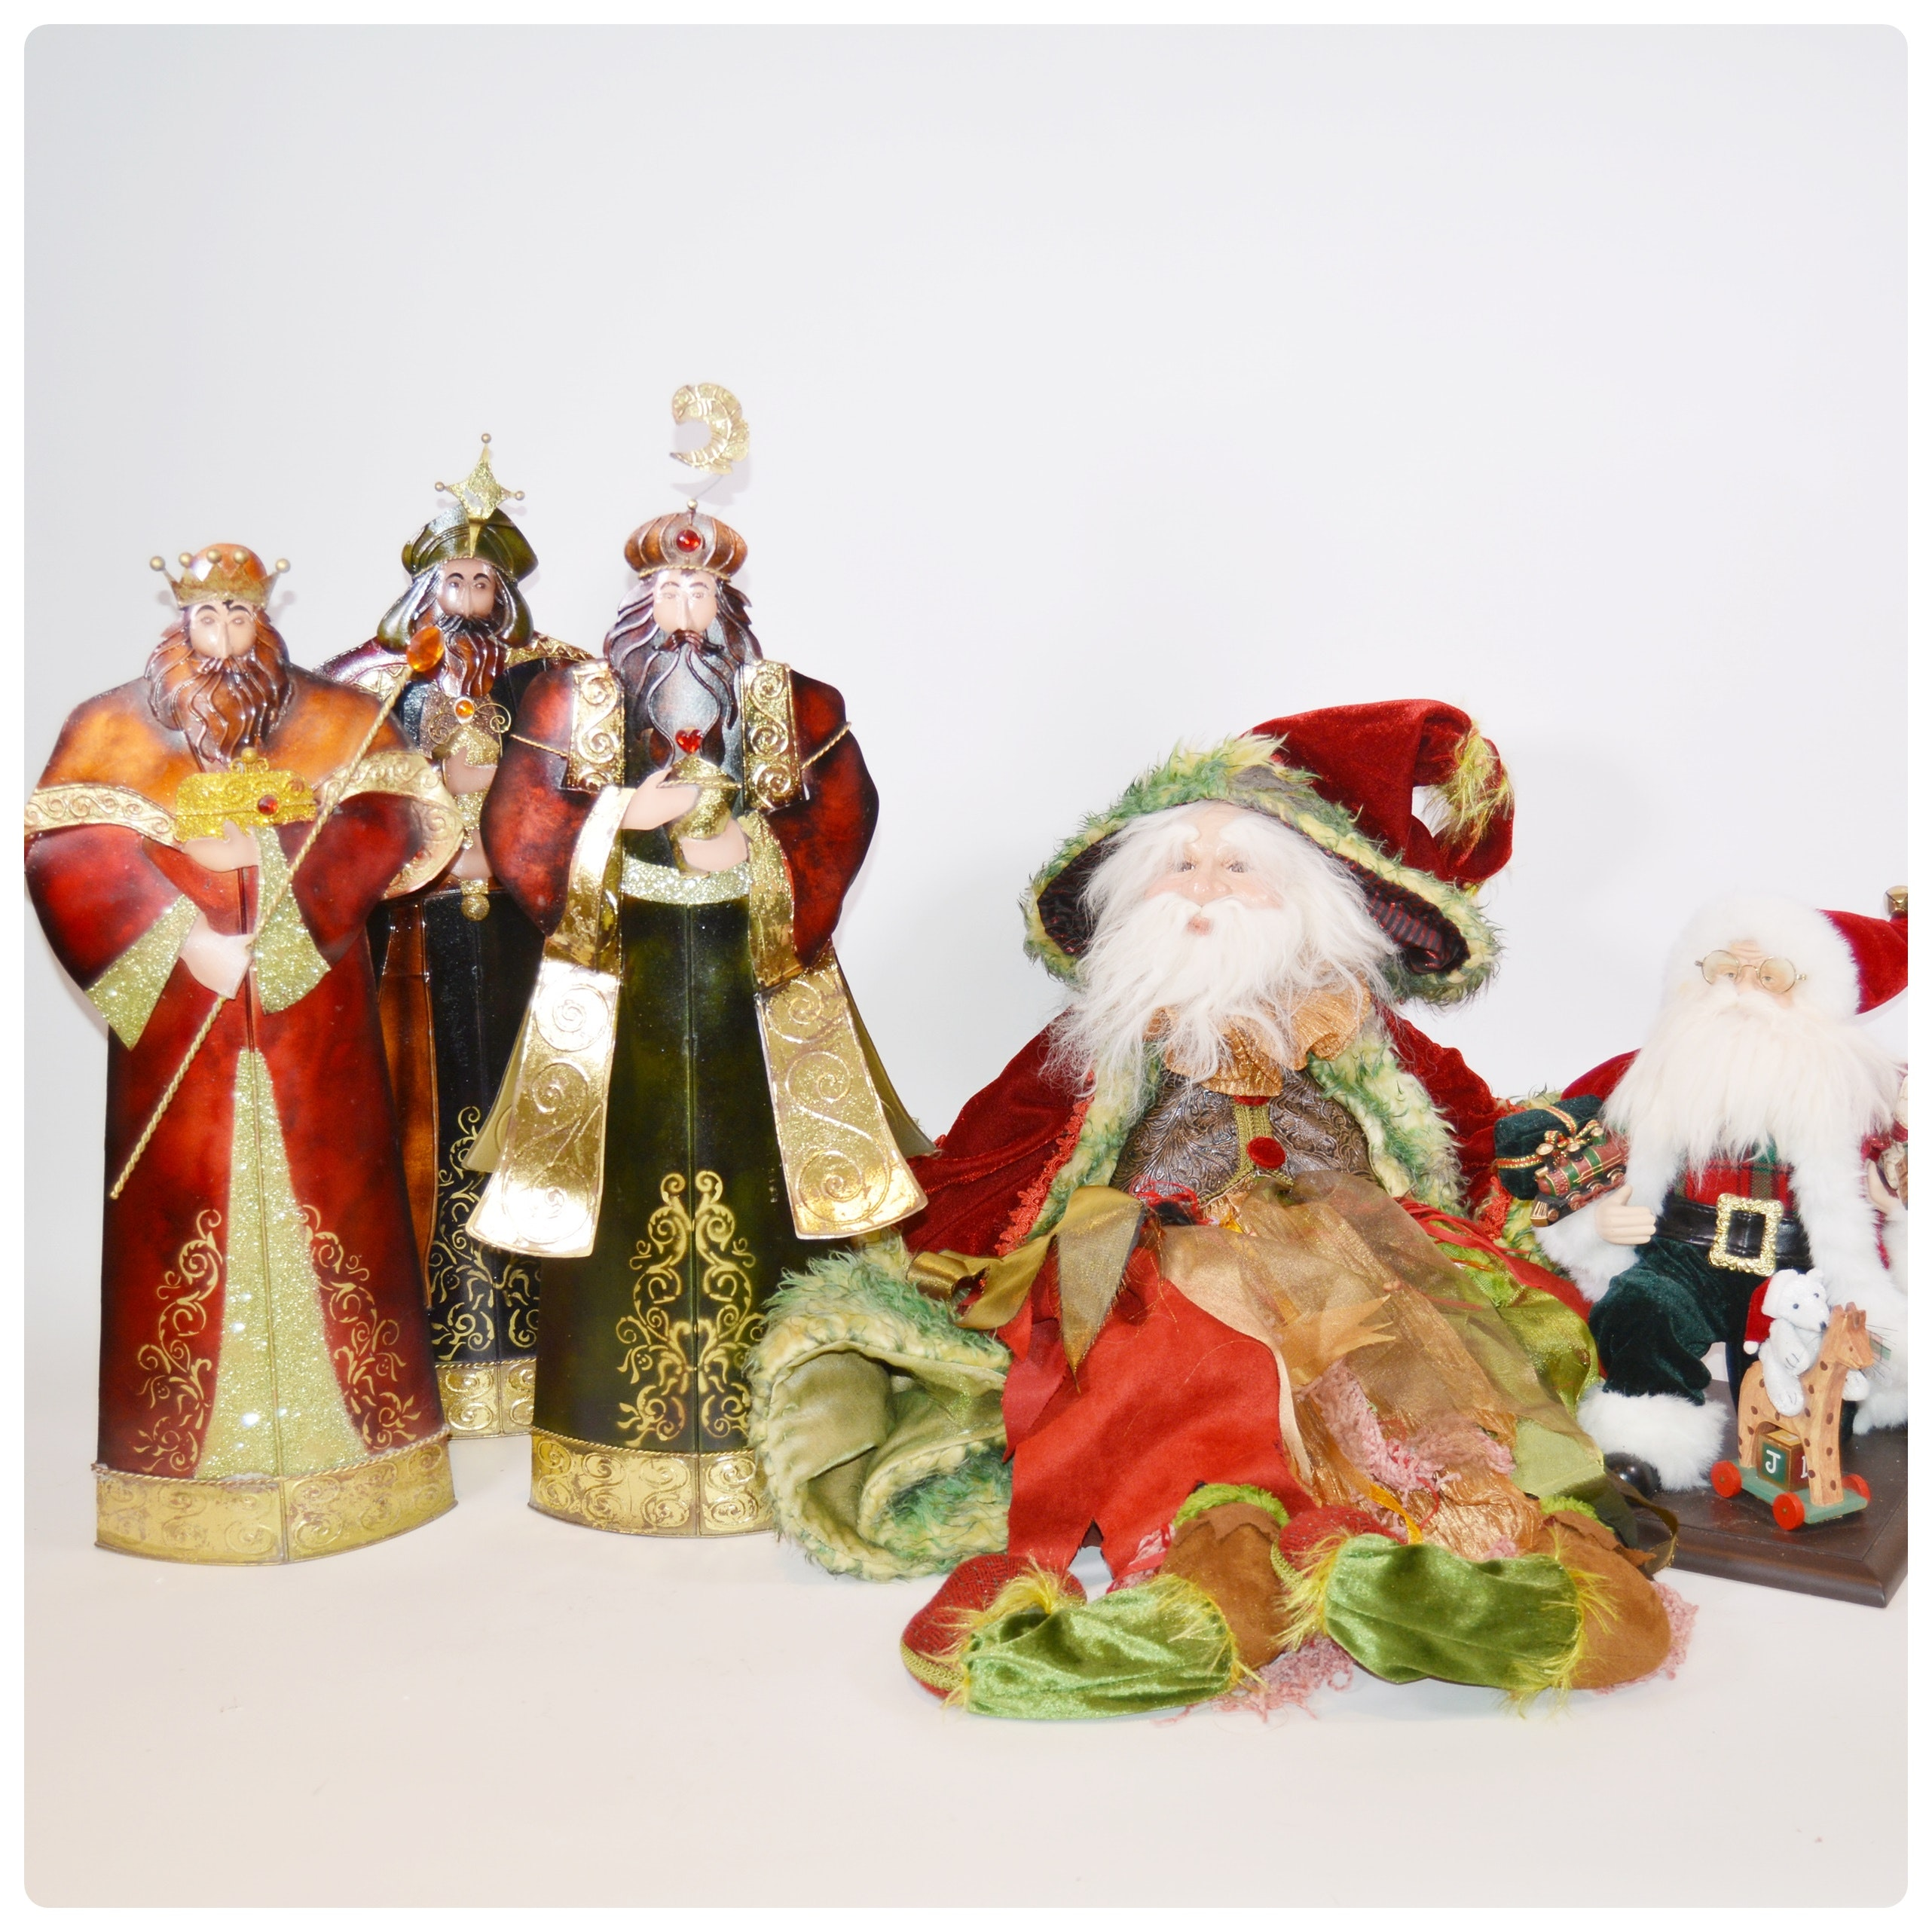 Santa Claus and Wise Men Seasonal Decor